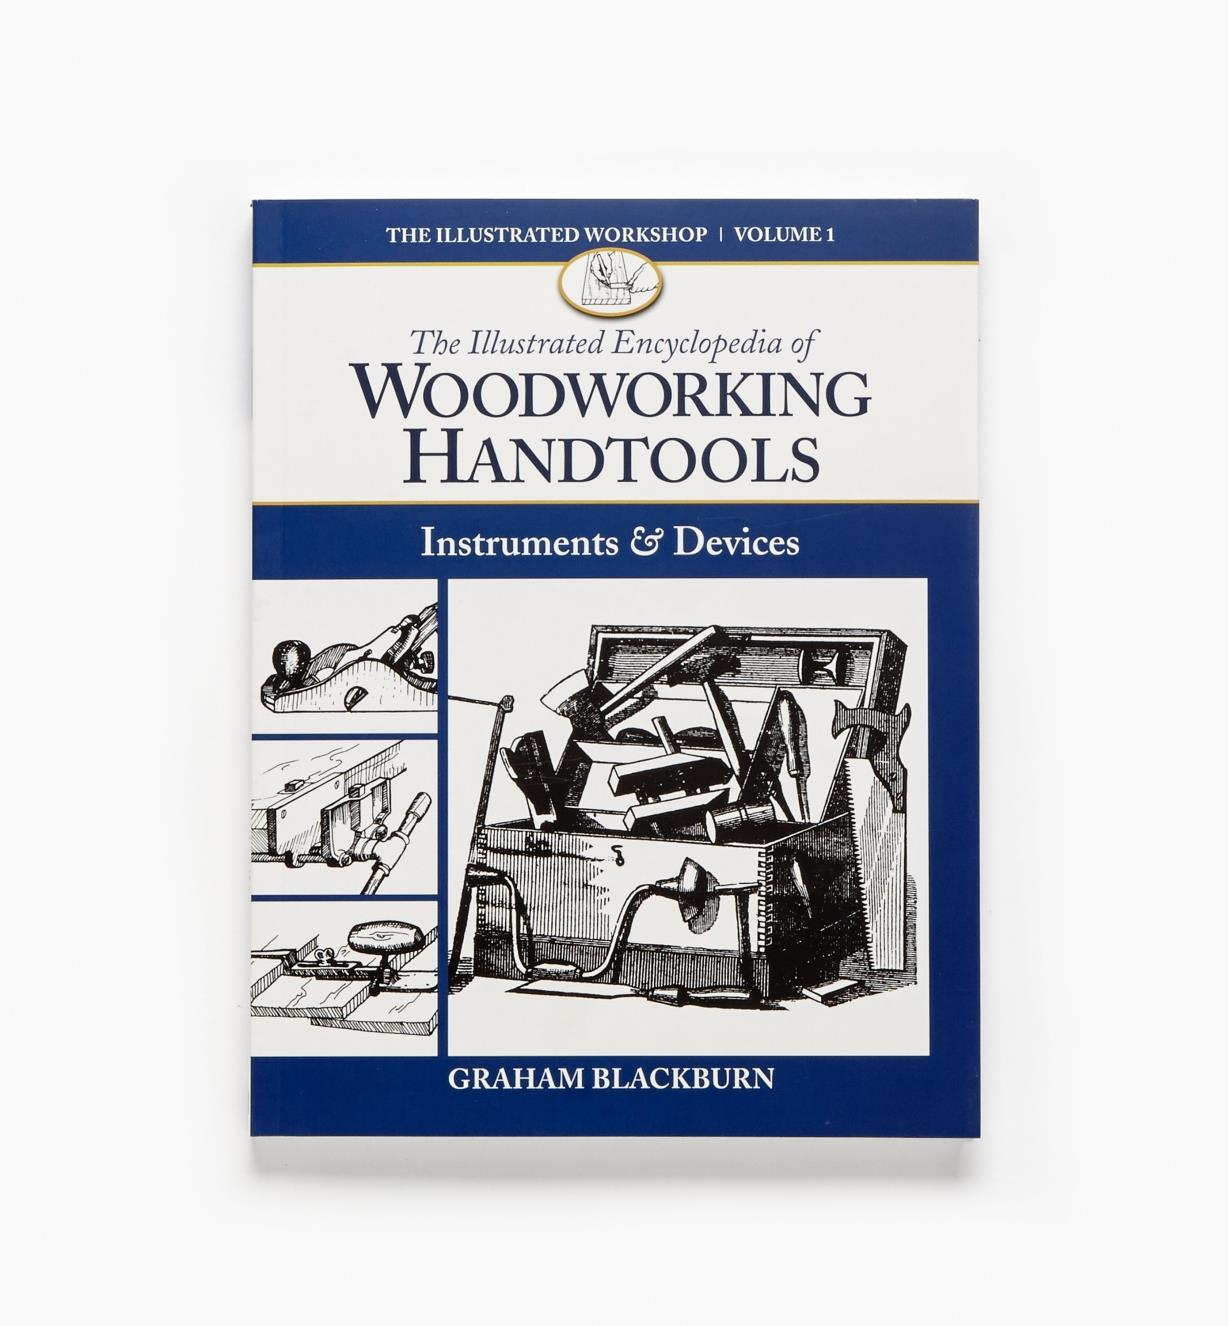 49L2734 - The Illustrated Encyclopedia of Woodworking Handtools, Instruments & Devices